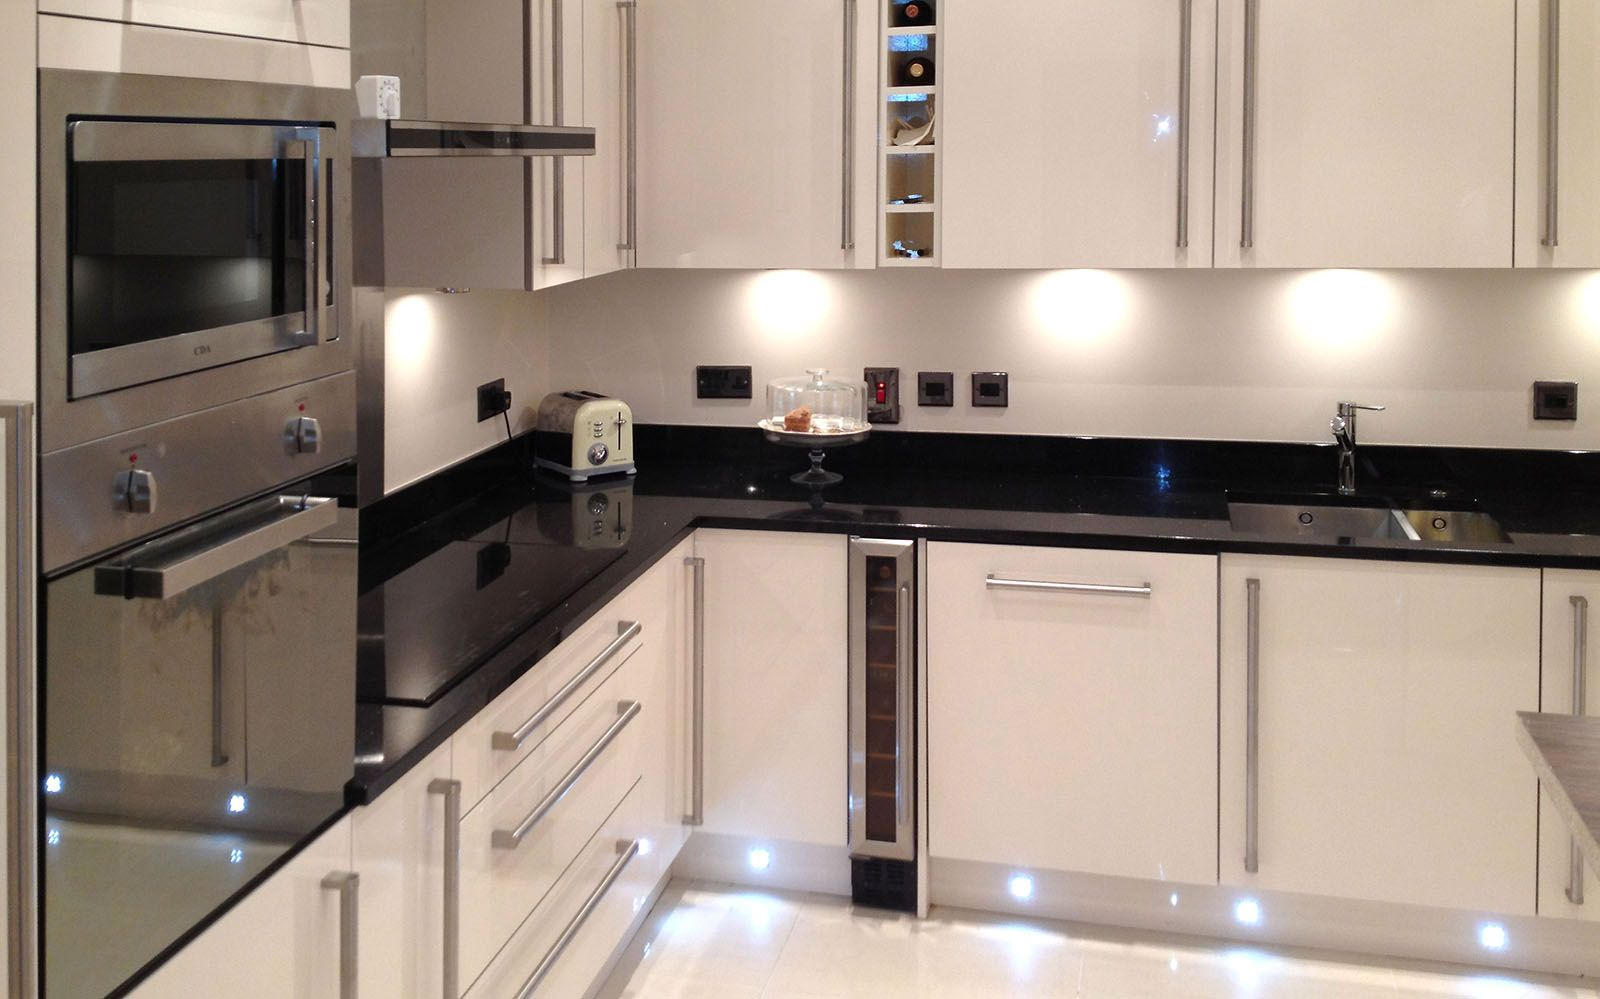 Valencia Kitchen - Classic High Gloss Cream Design | Tesco ...